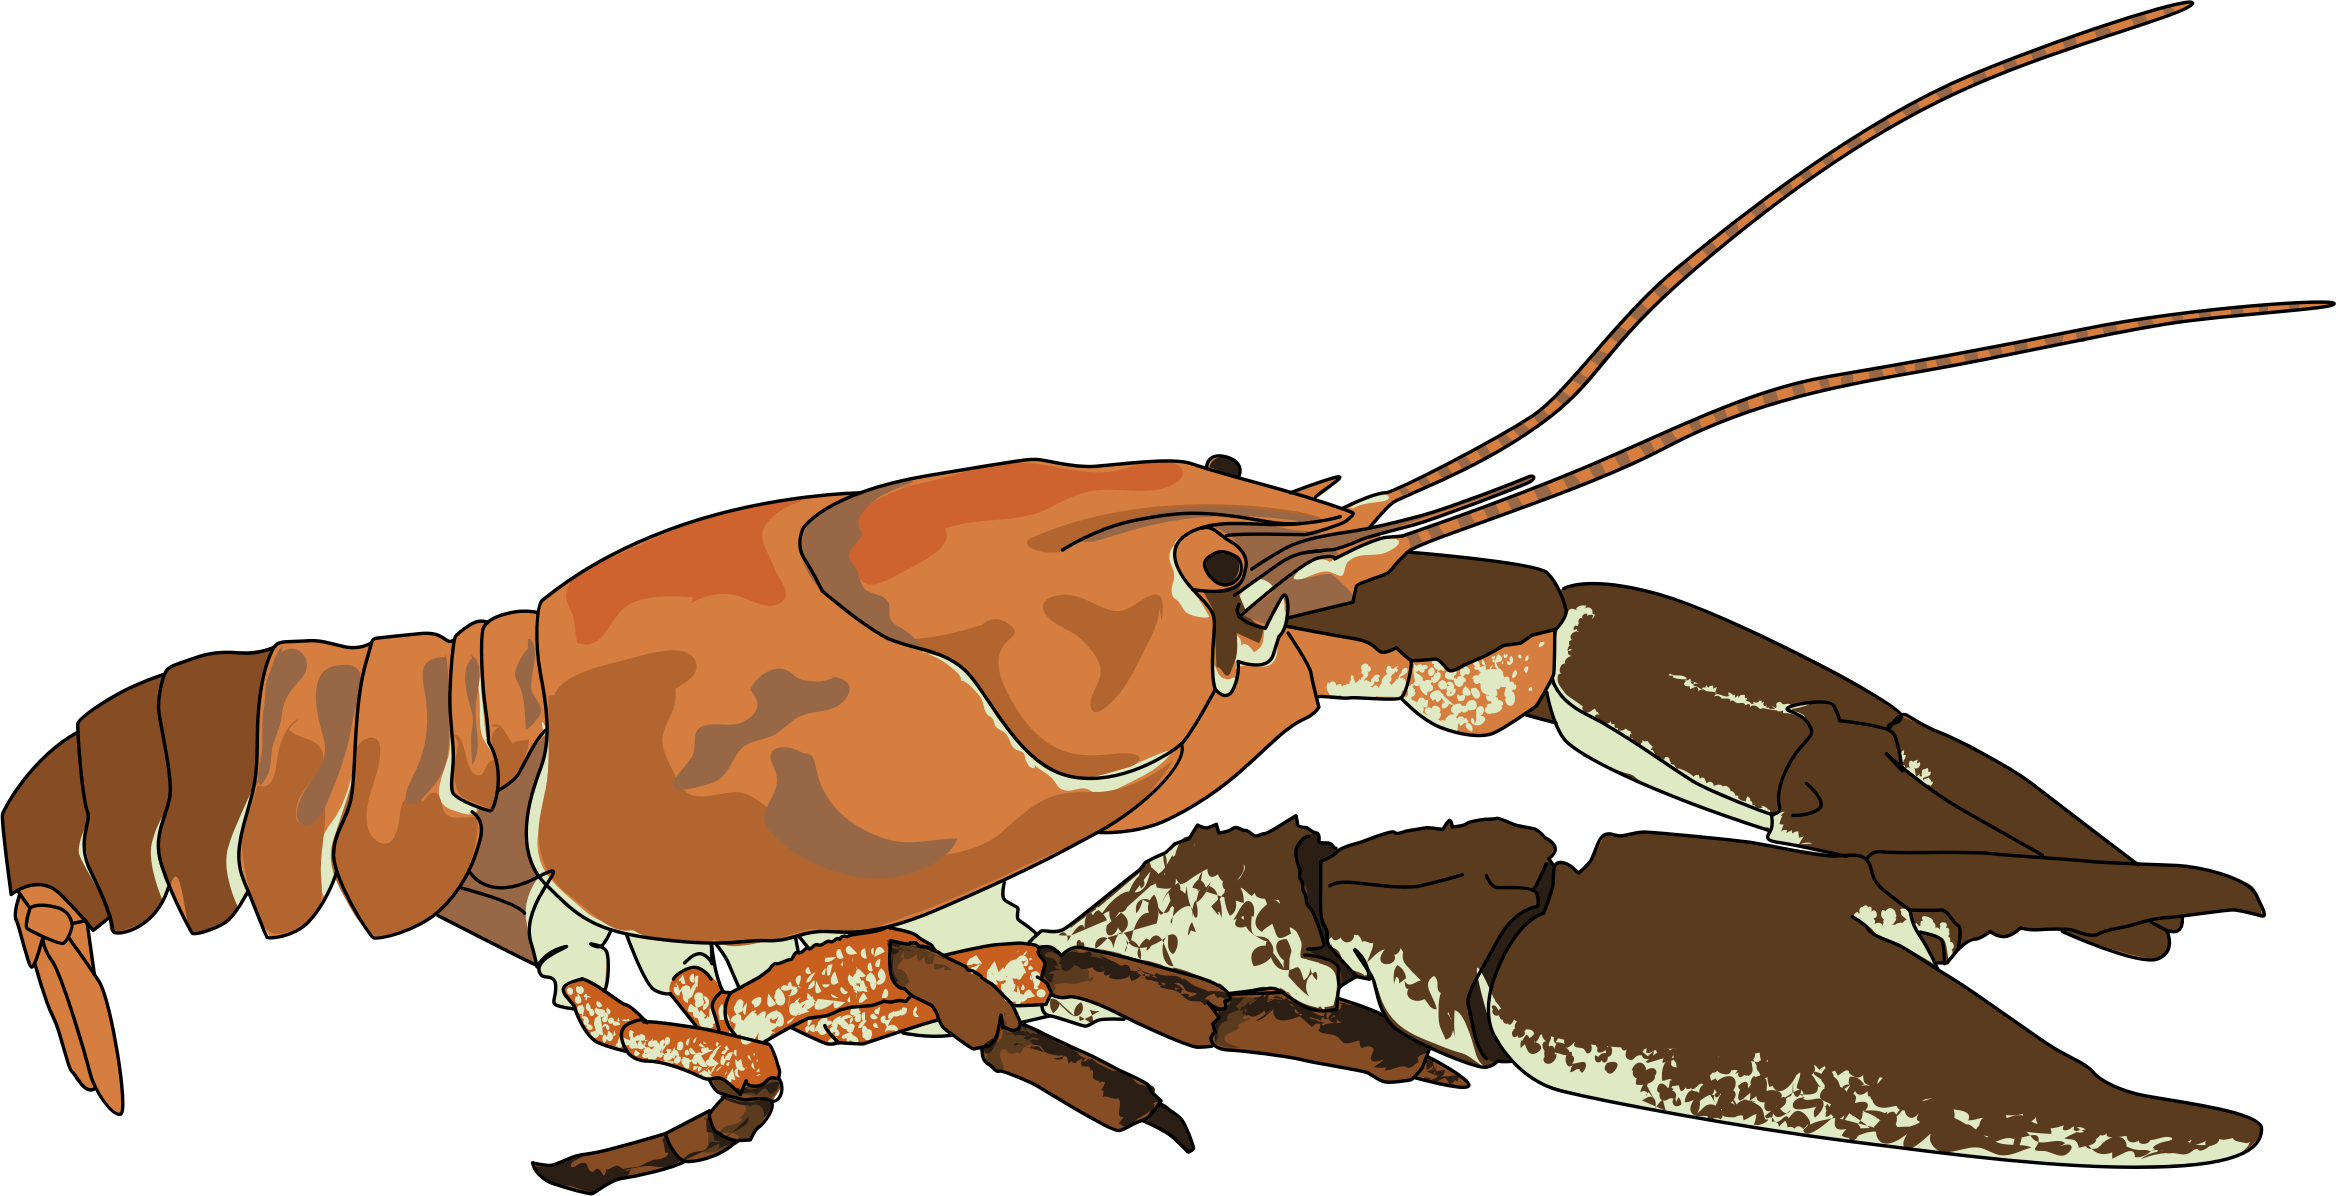 Ecrevisse a pattes blanches - white-clawed crayfish by enolynn